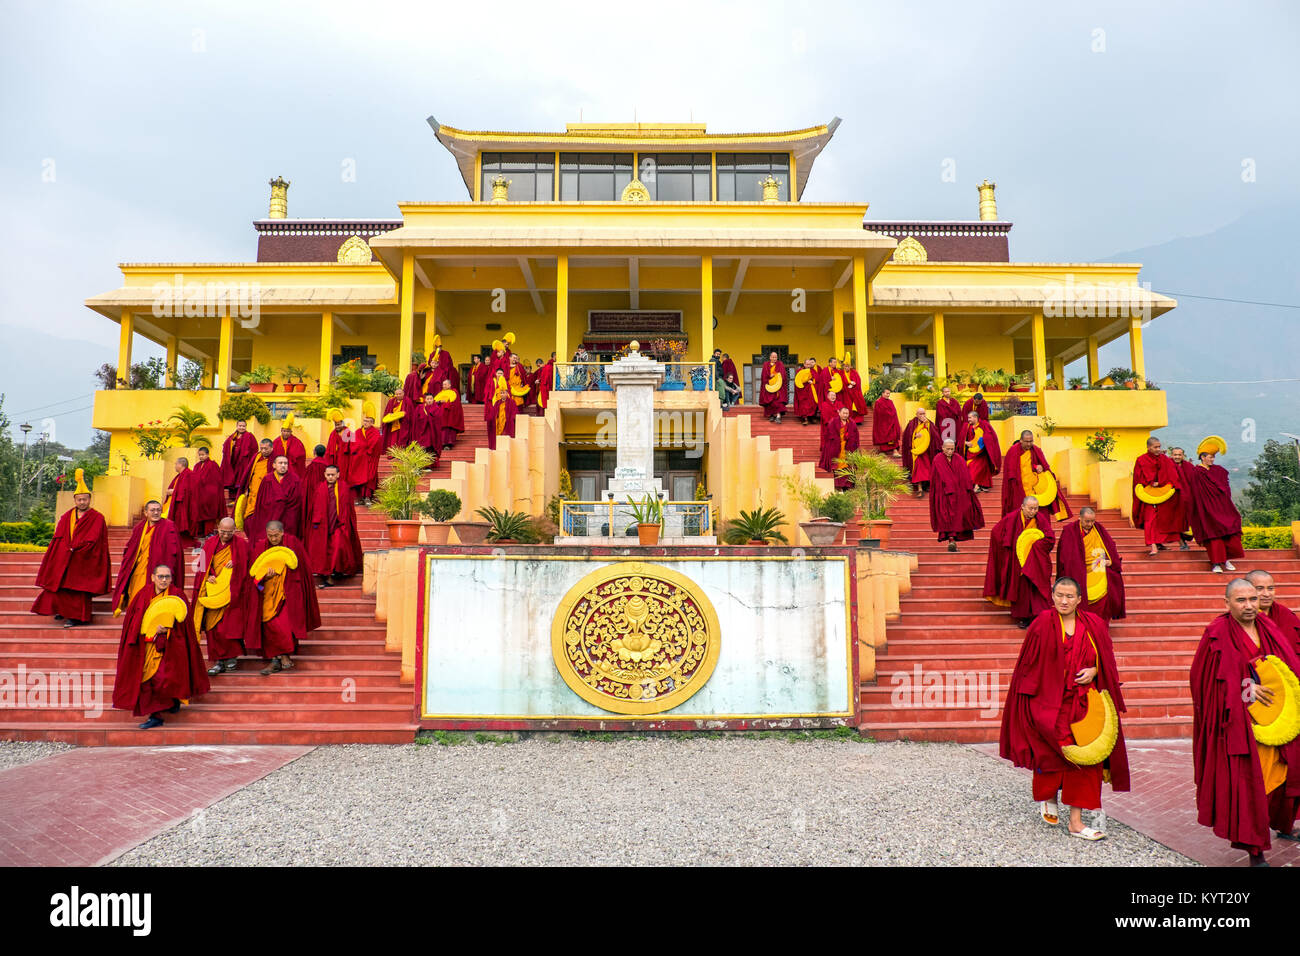 Tibetan monks streaming out of a parayer hall at a Tibetan Buddhist Monastery in Dharamshala, India - Stock Image